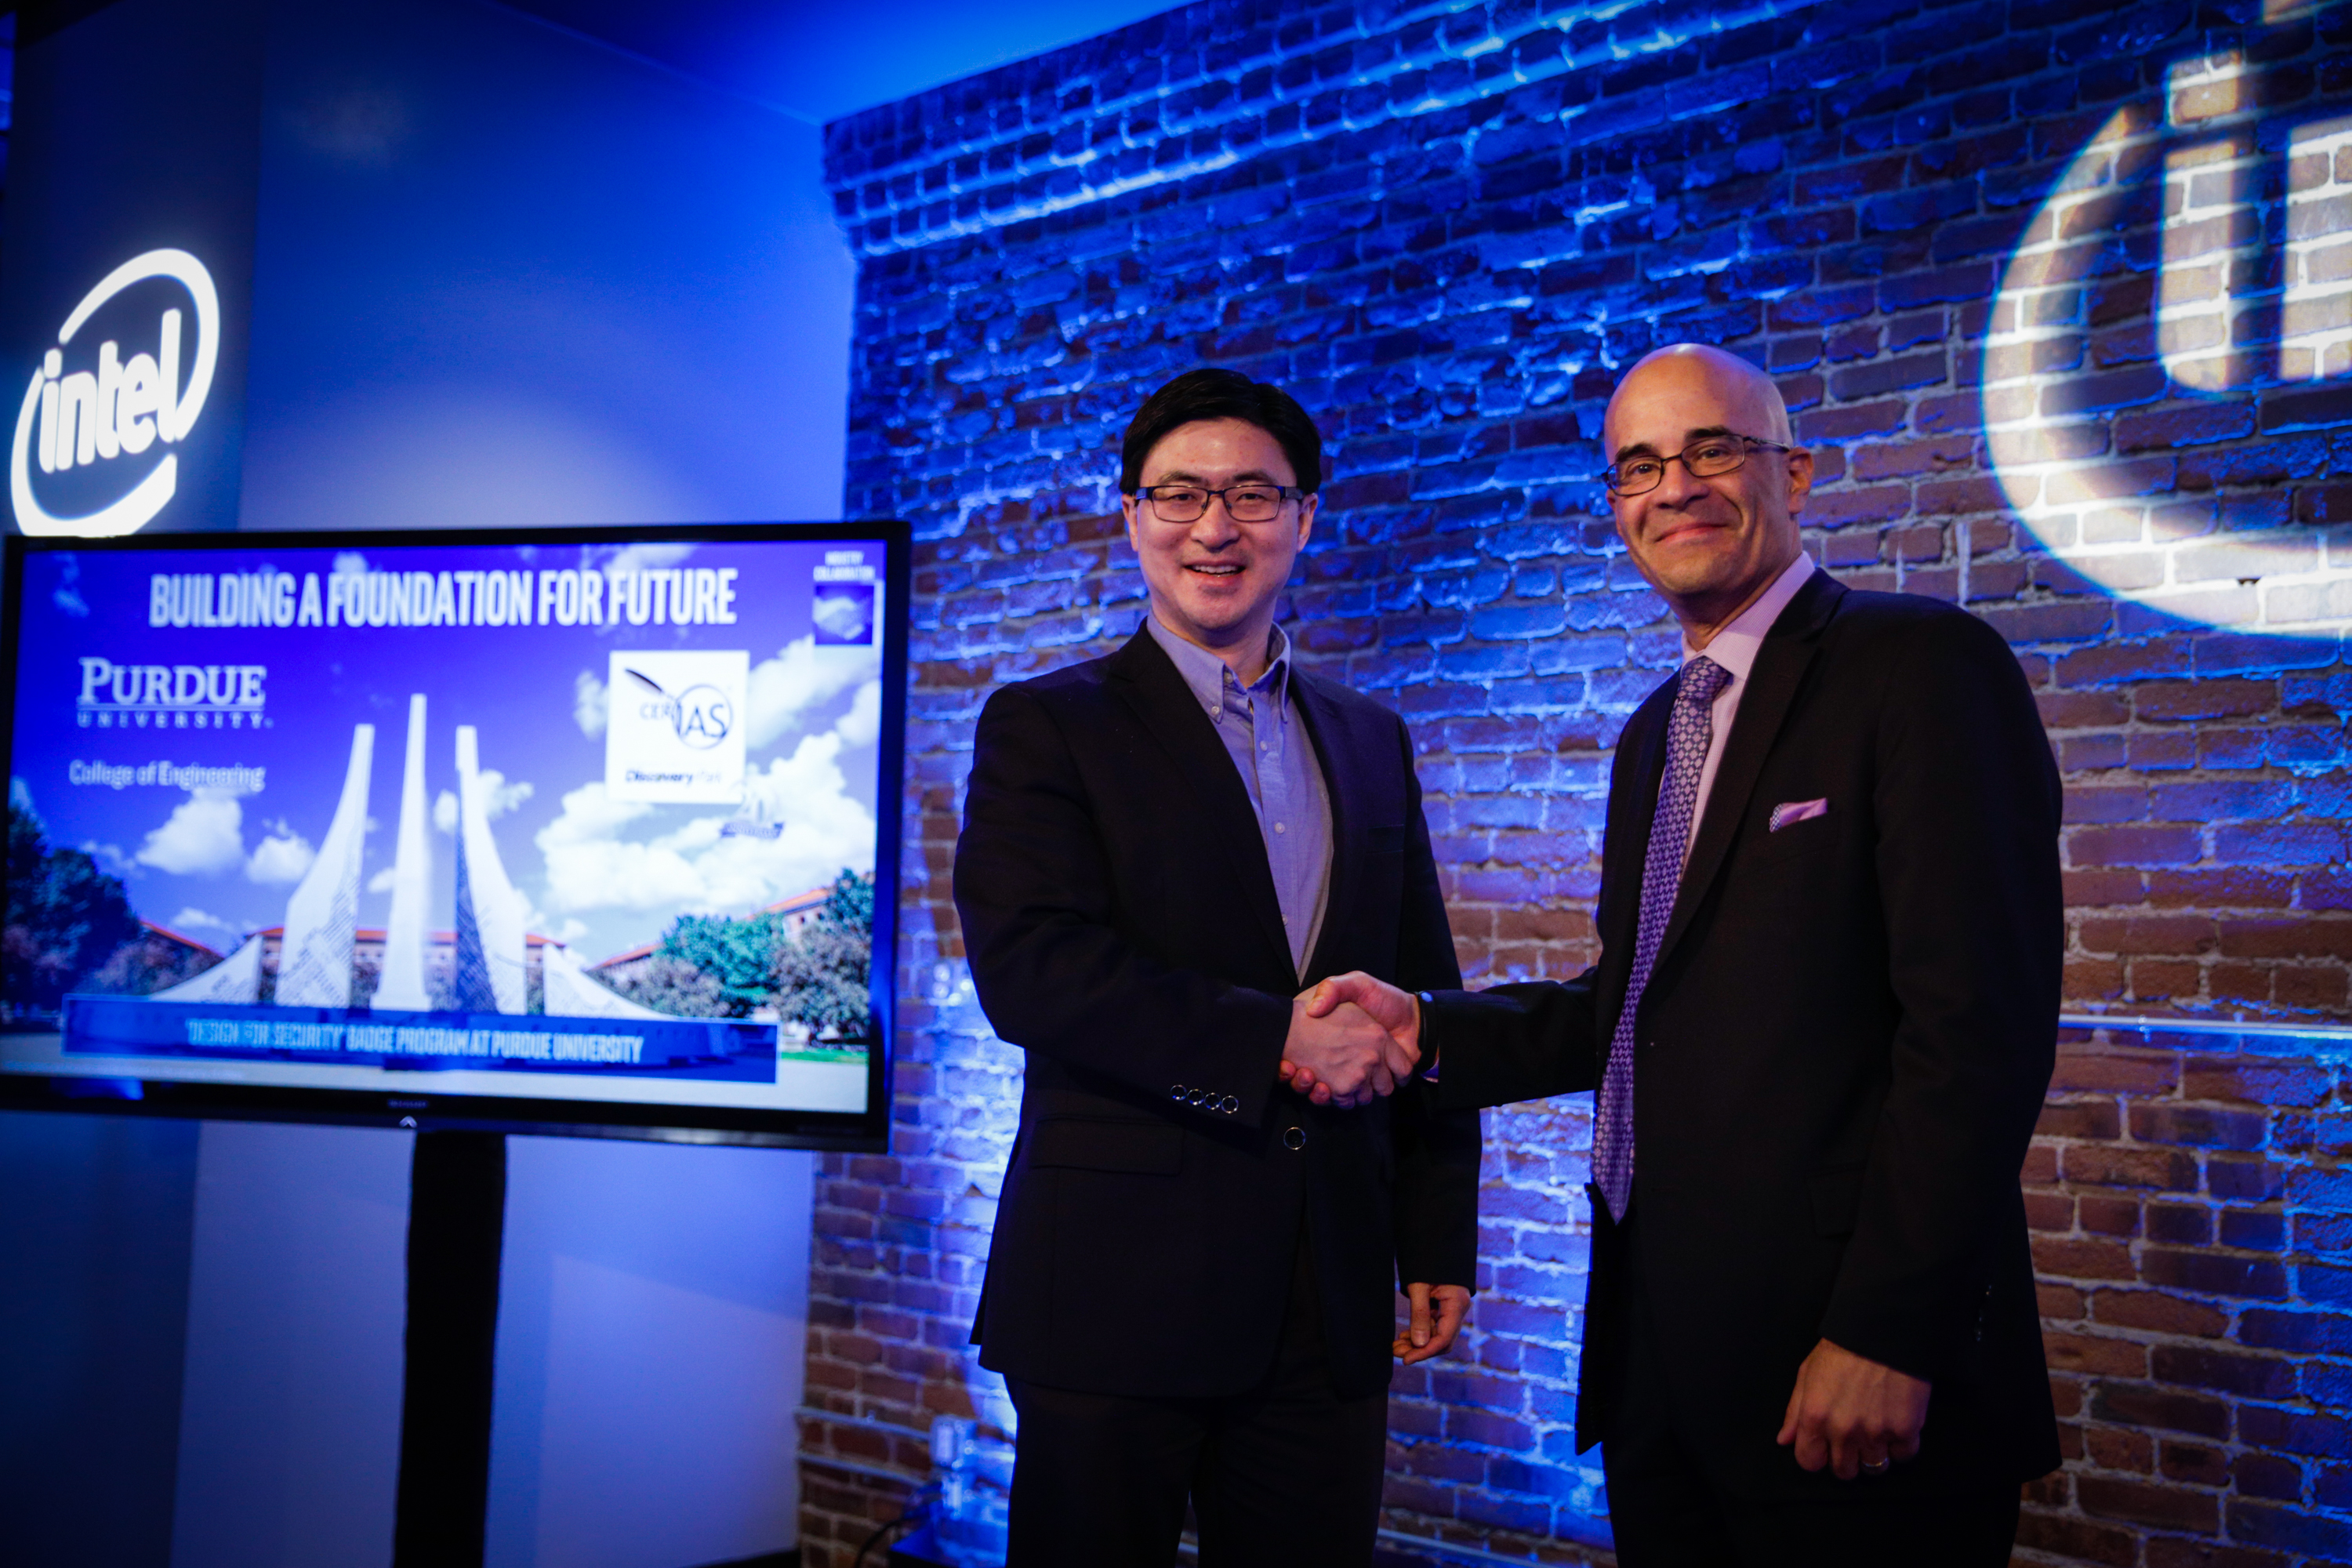 Photo of Purdue Engineering Dean Mung Chiang and Intel's Rick Echevarria